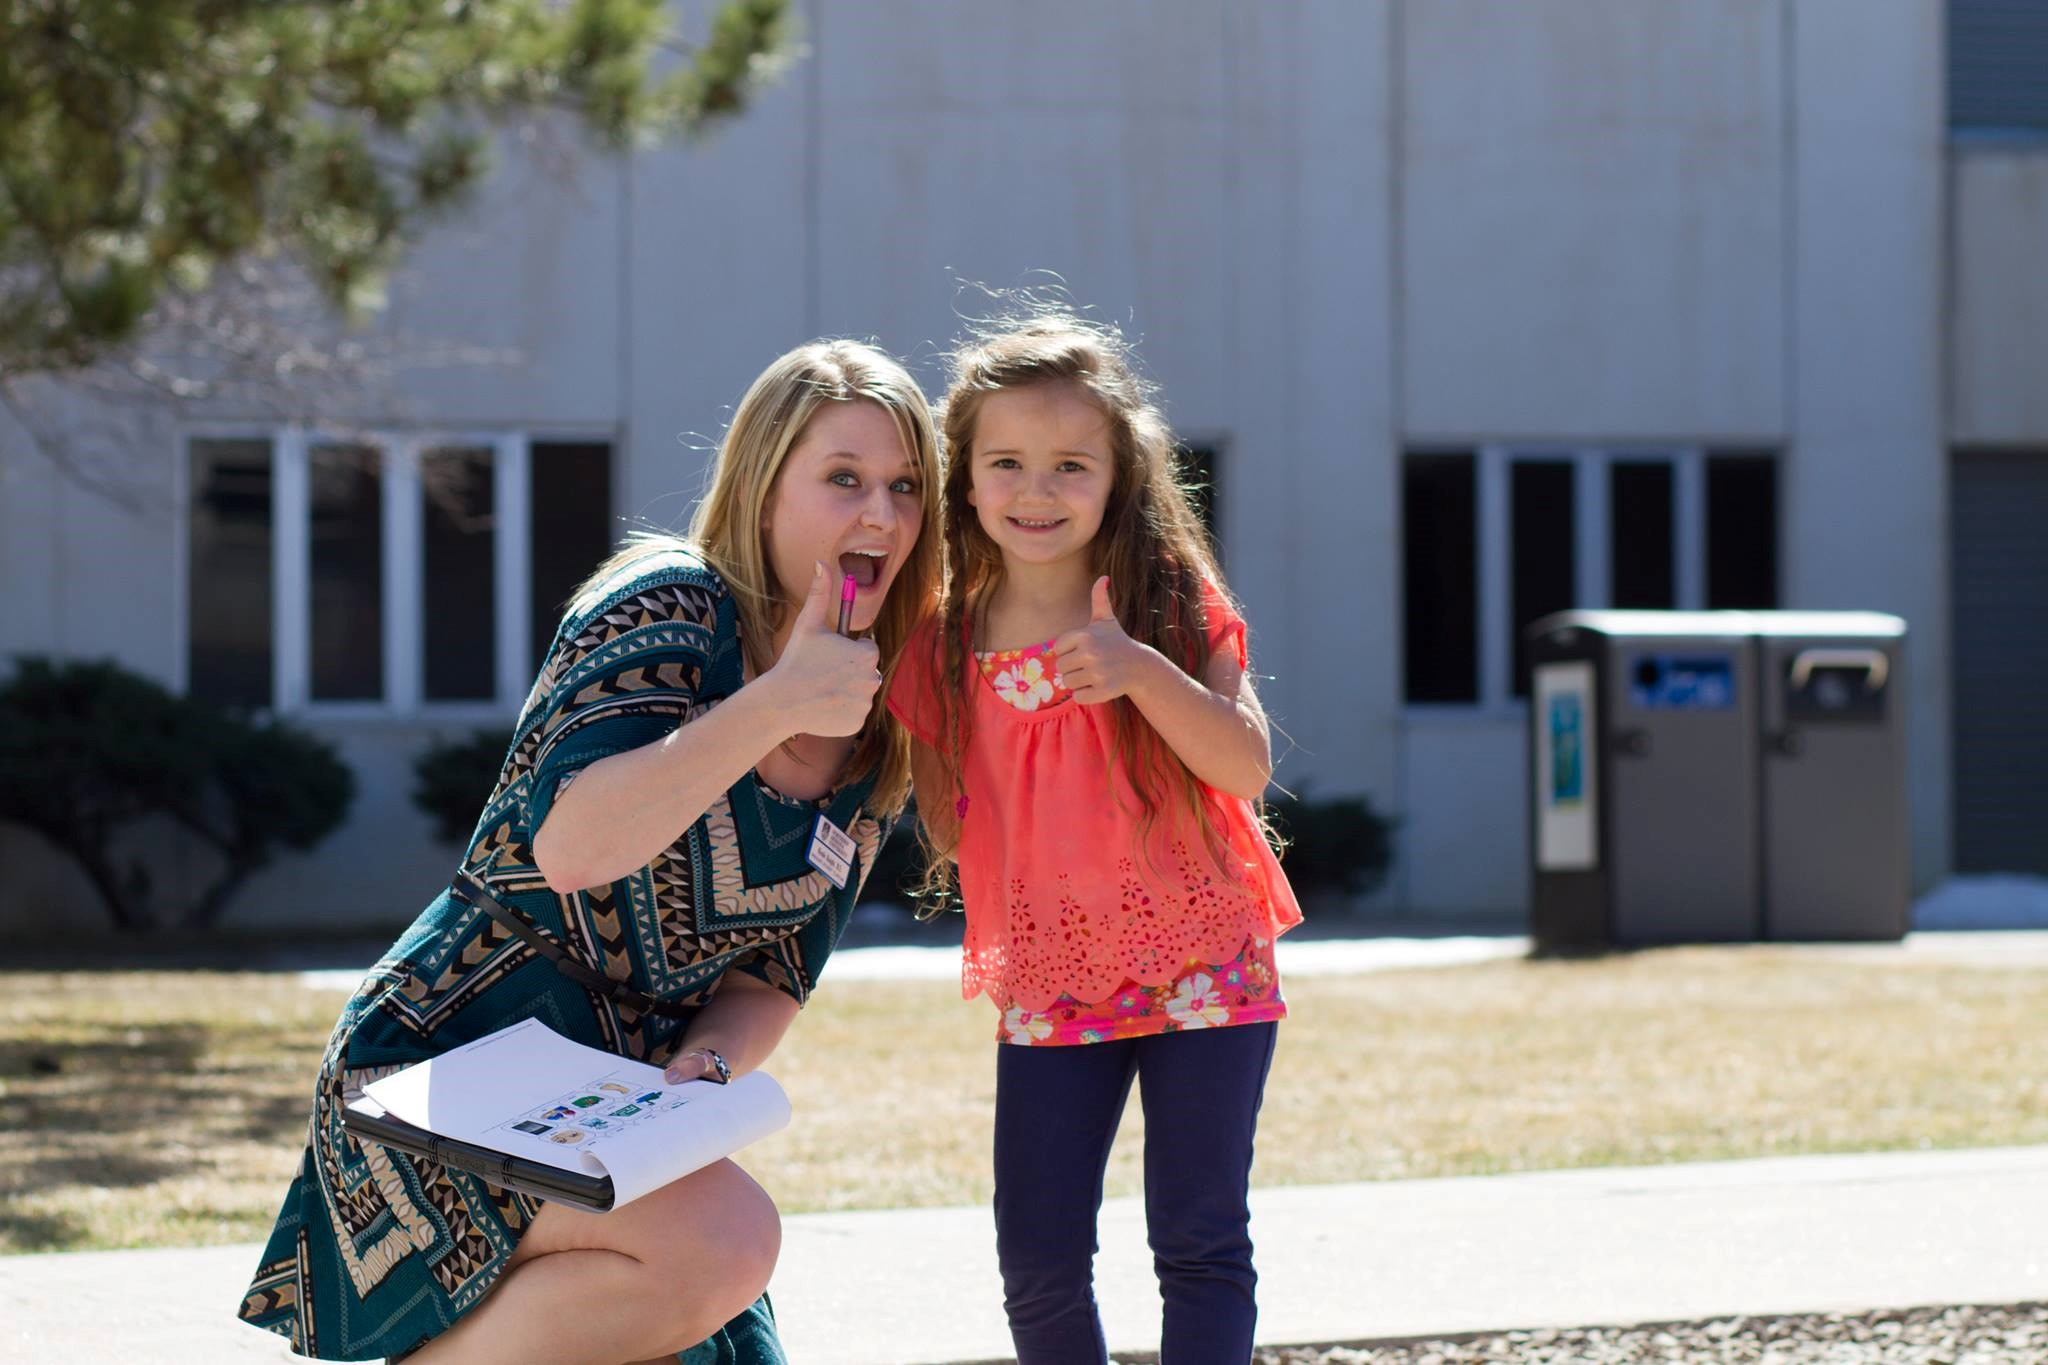 Thumbs up - Student and child